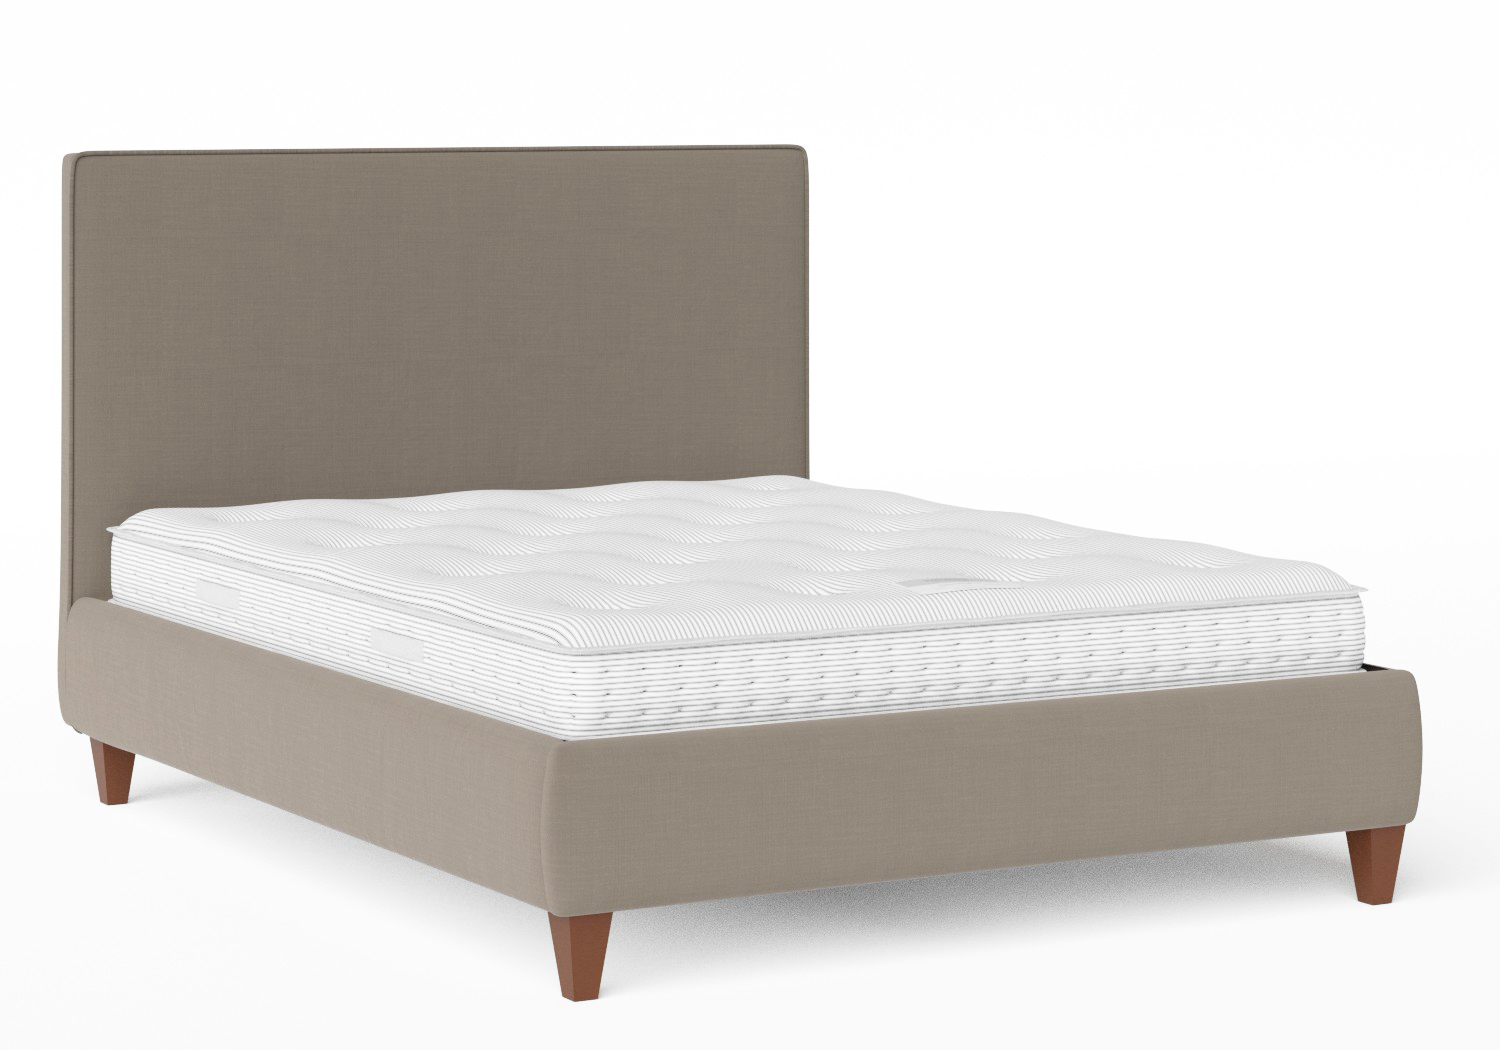 Yushan Upholstered Bed in Grey fabric with piping shown with Juno 1 mattress